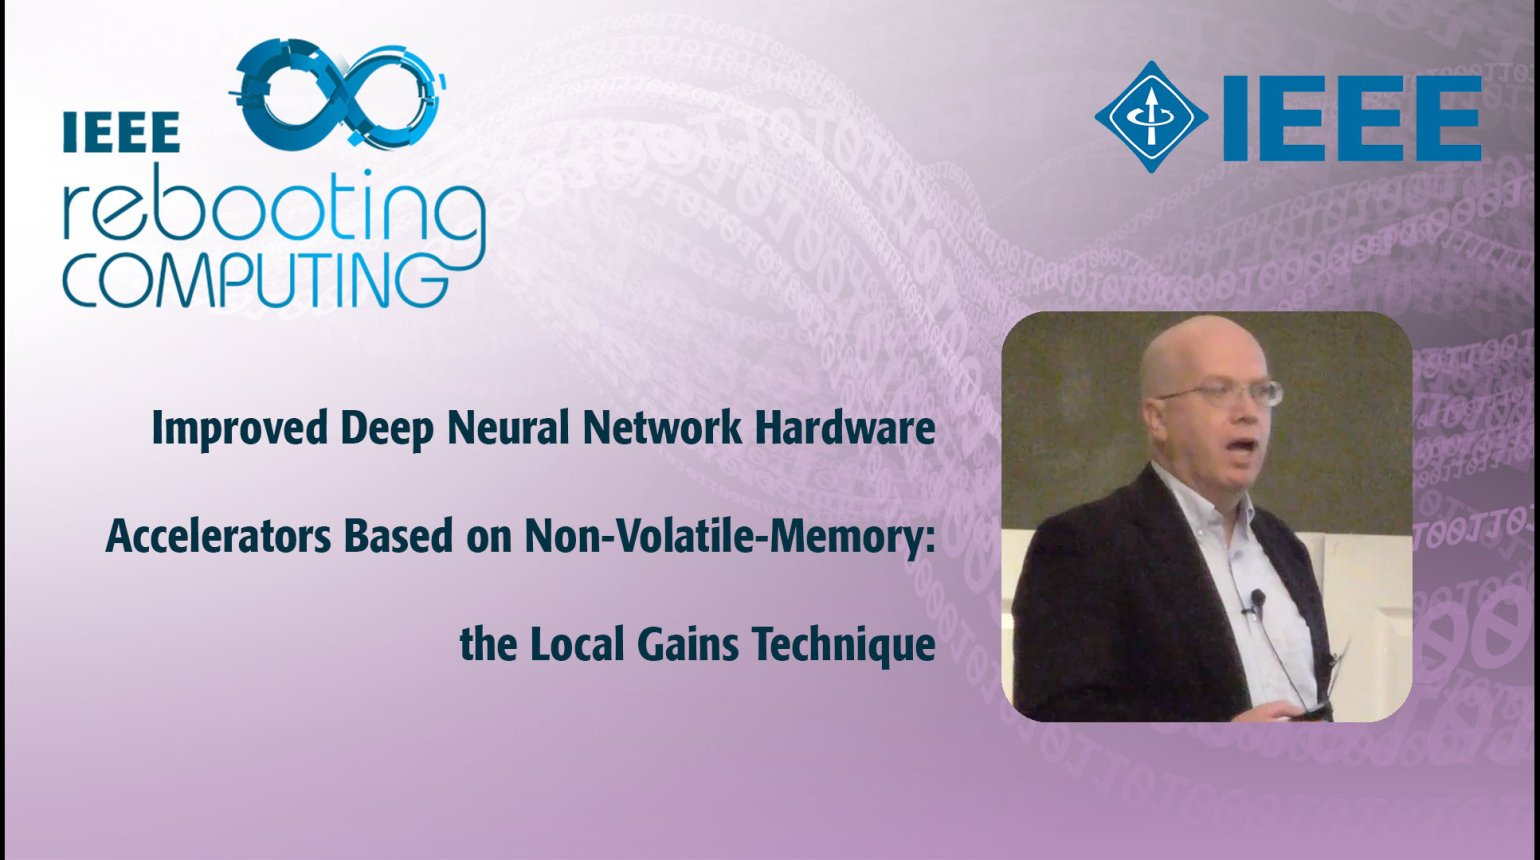 Improved Deep Neural Network Hardware Accelerators Based on Non-Volatile-Memory: the Local Gains Technique: IEEE Rebooting Computing 2017